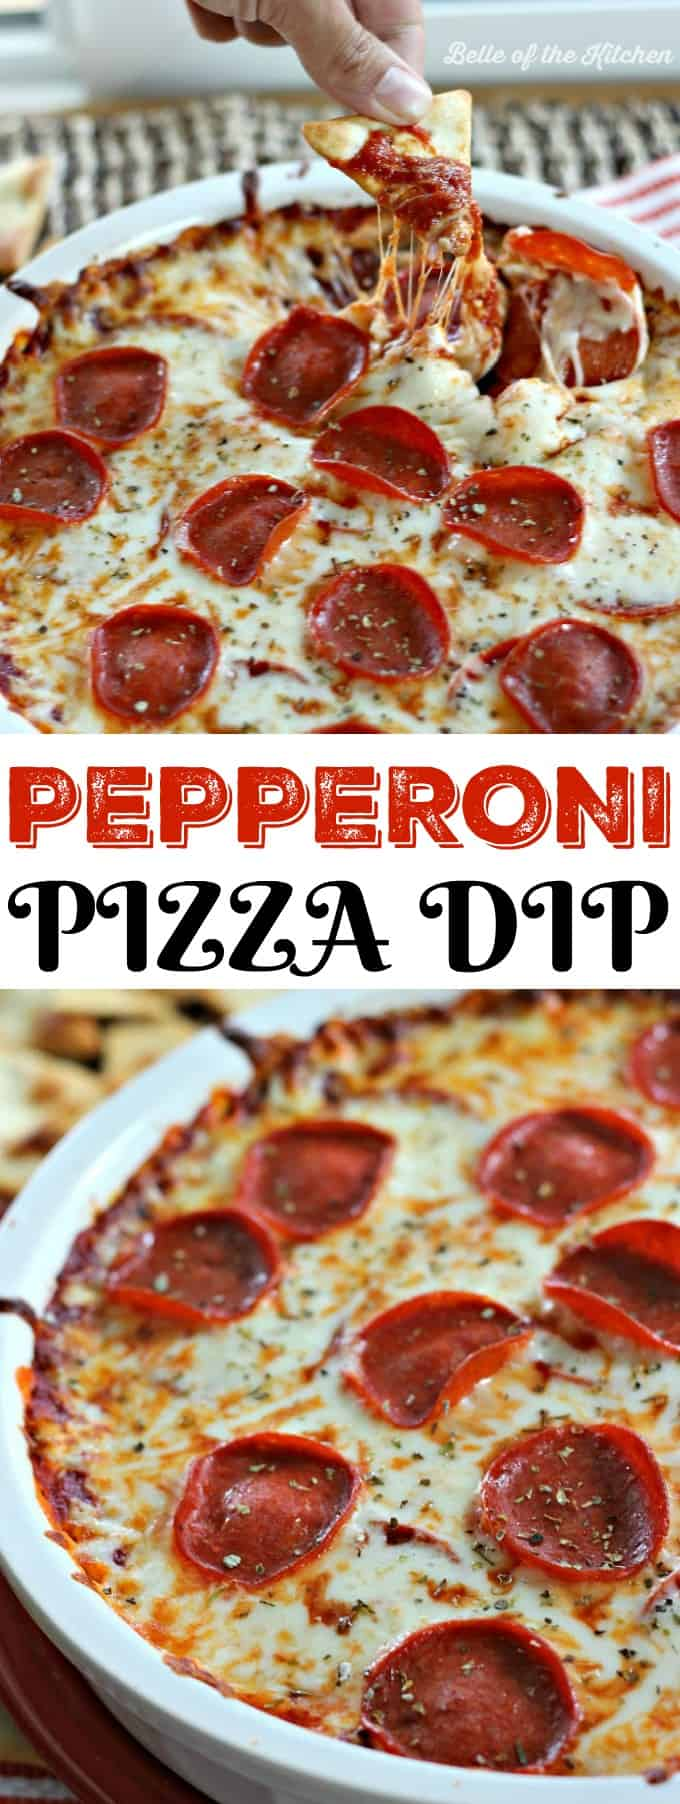 This Pepperoni Pizza Dip is such an easy and fun appetizer! If you've got 20 minutes and a few simple ingredients, then get ready to dive into this cheesy goodness!